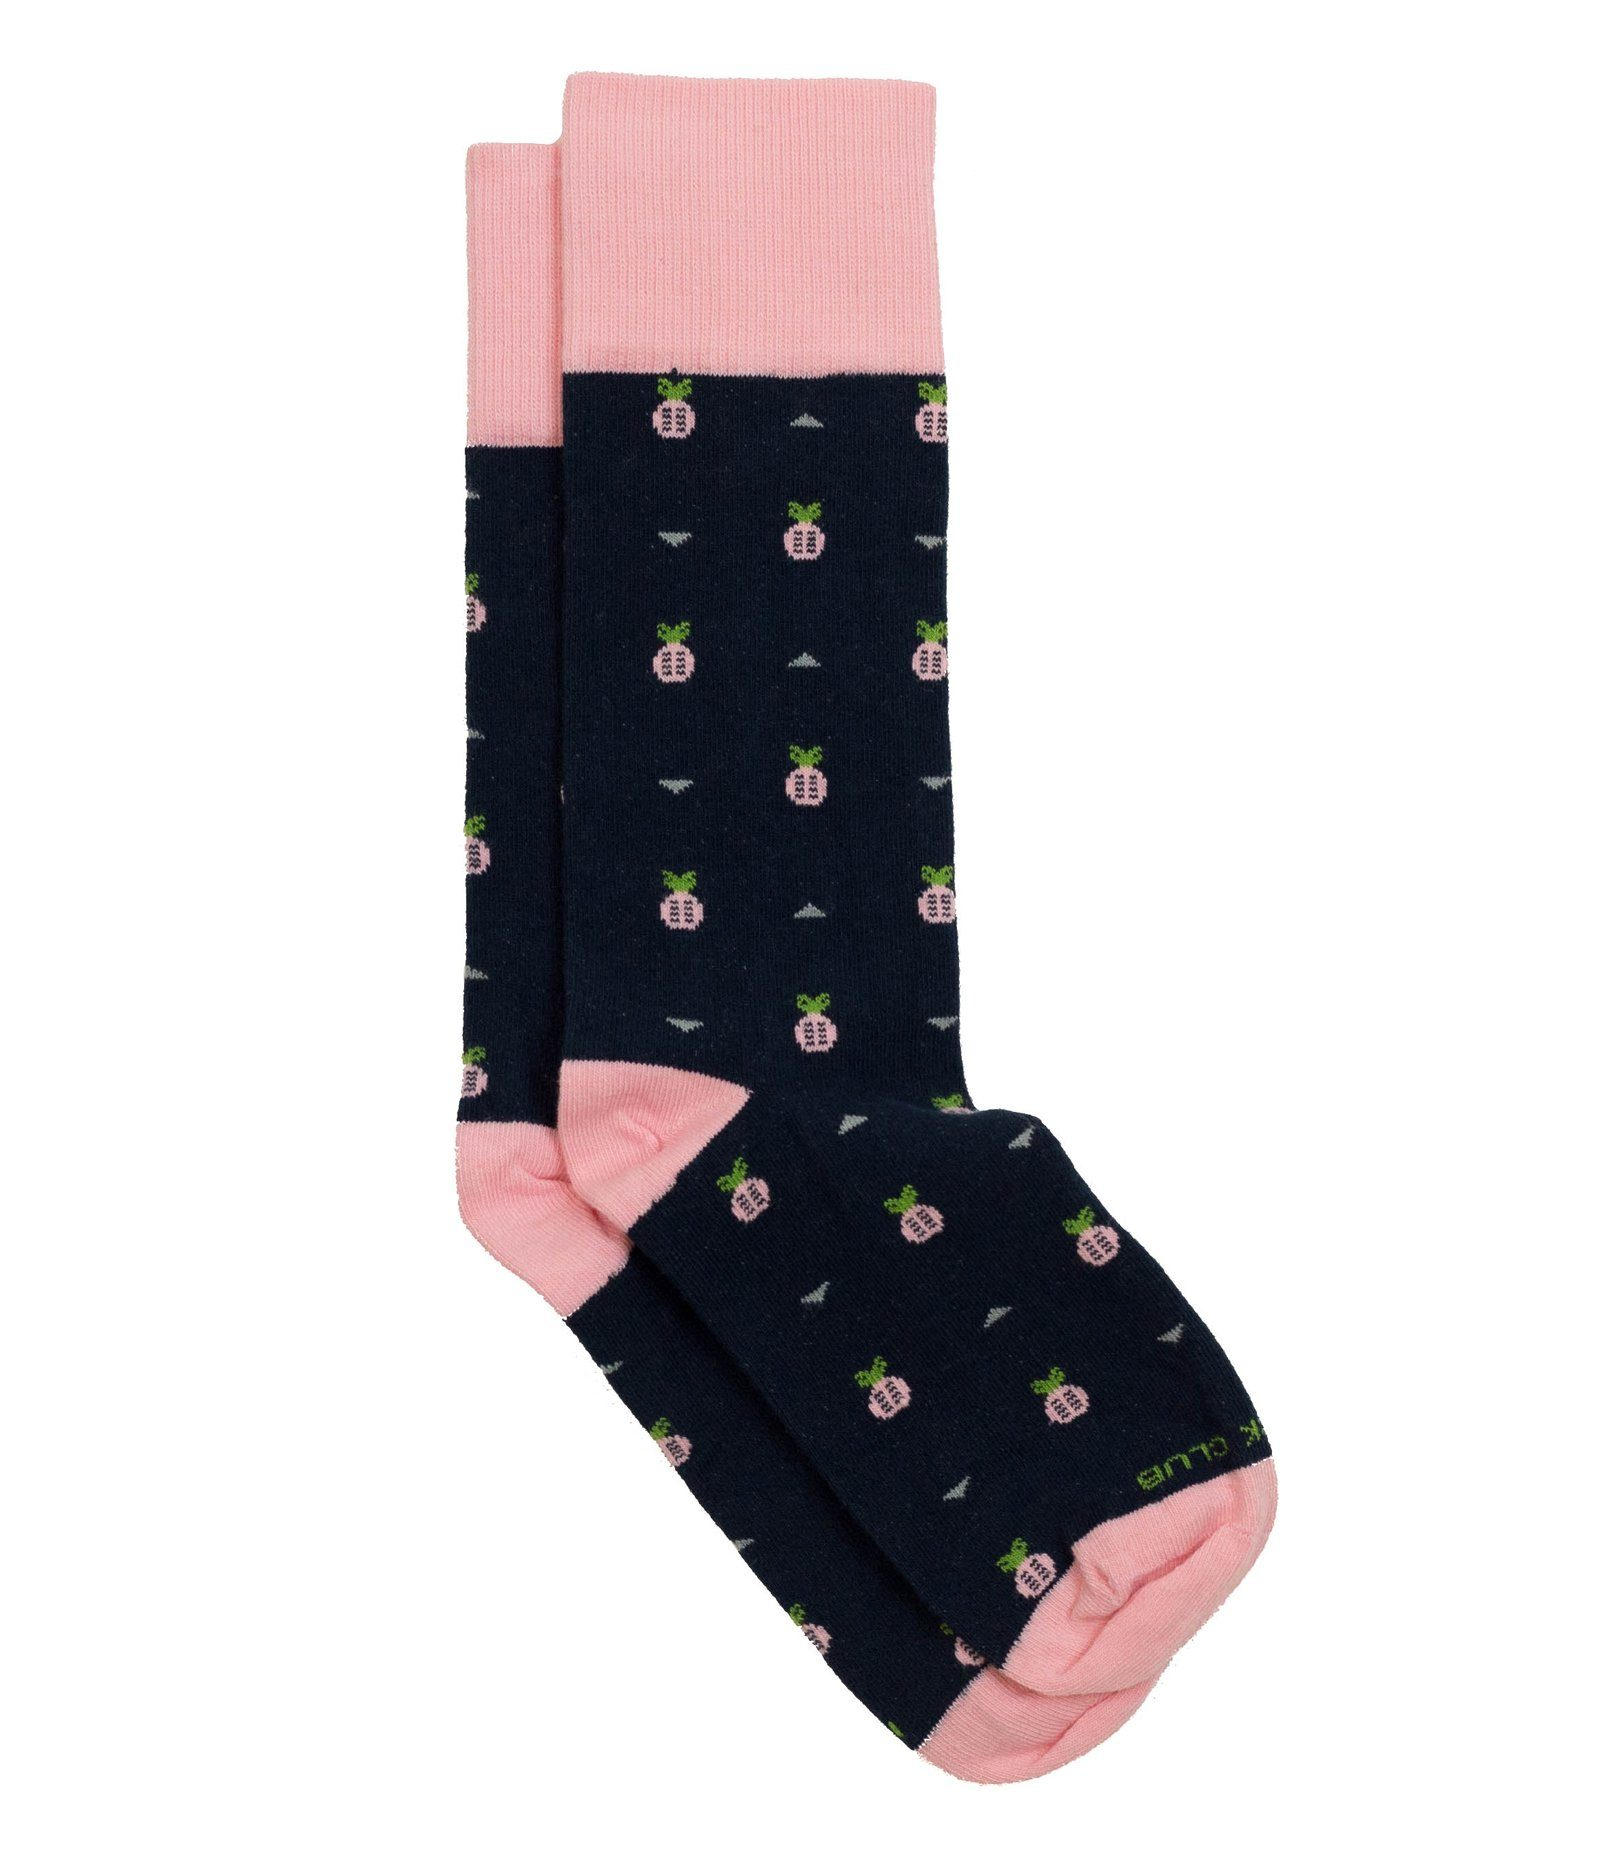 The Ananas - Navy - Sock Club Store